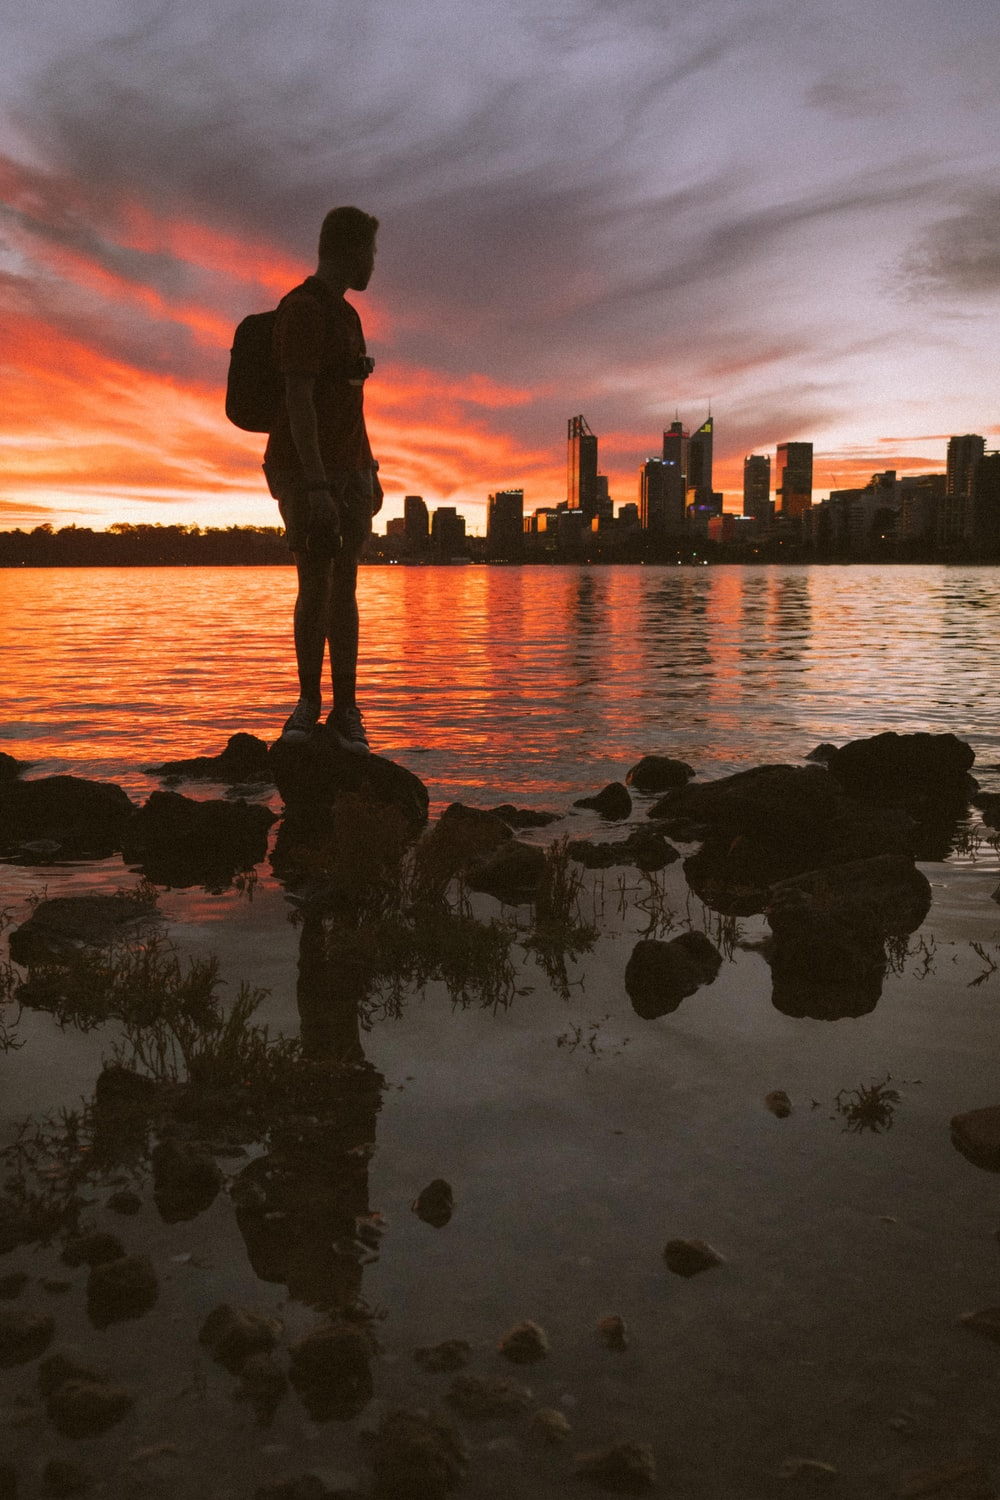 silhouette of man standing on rock near body of water during sunset